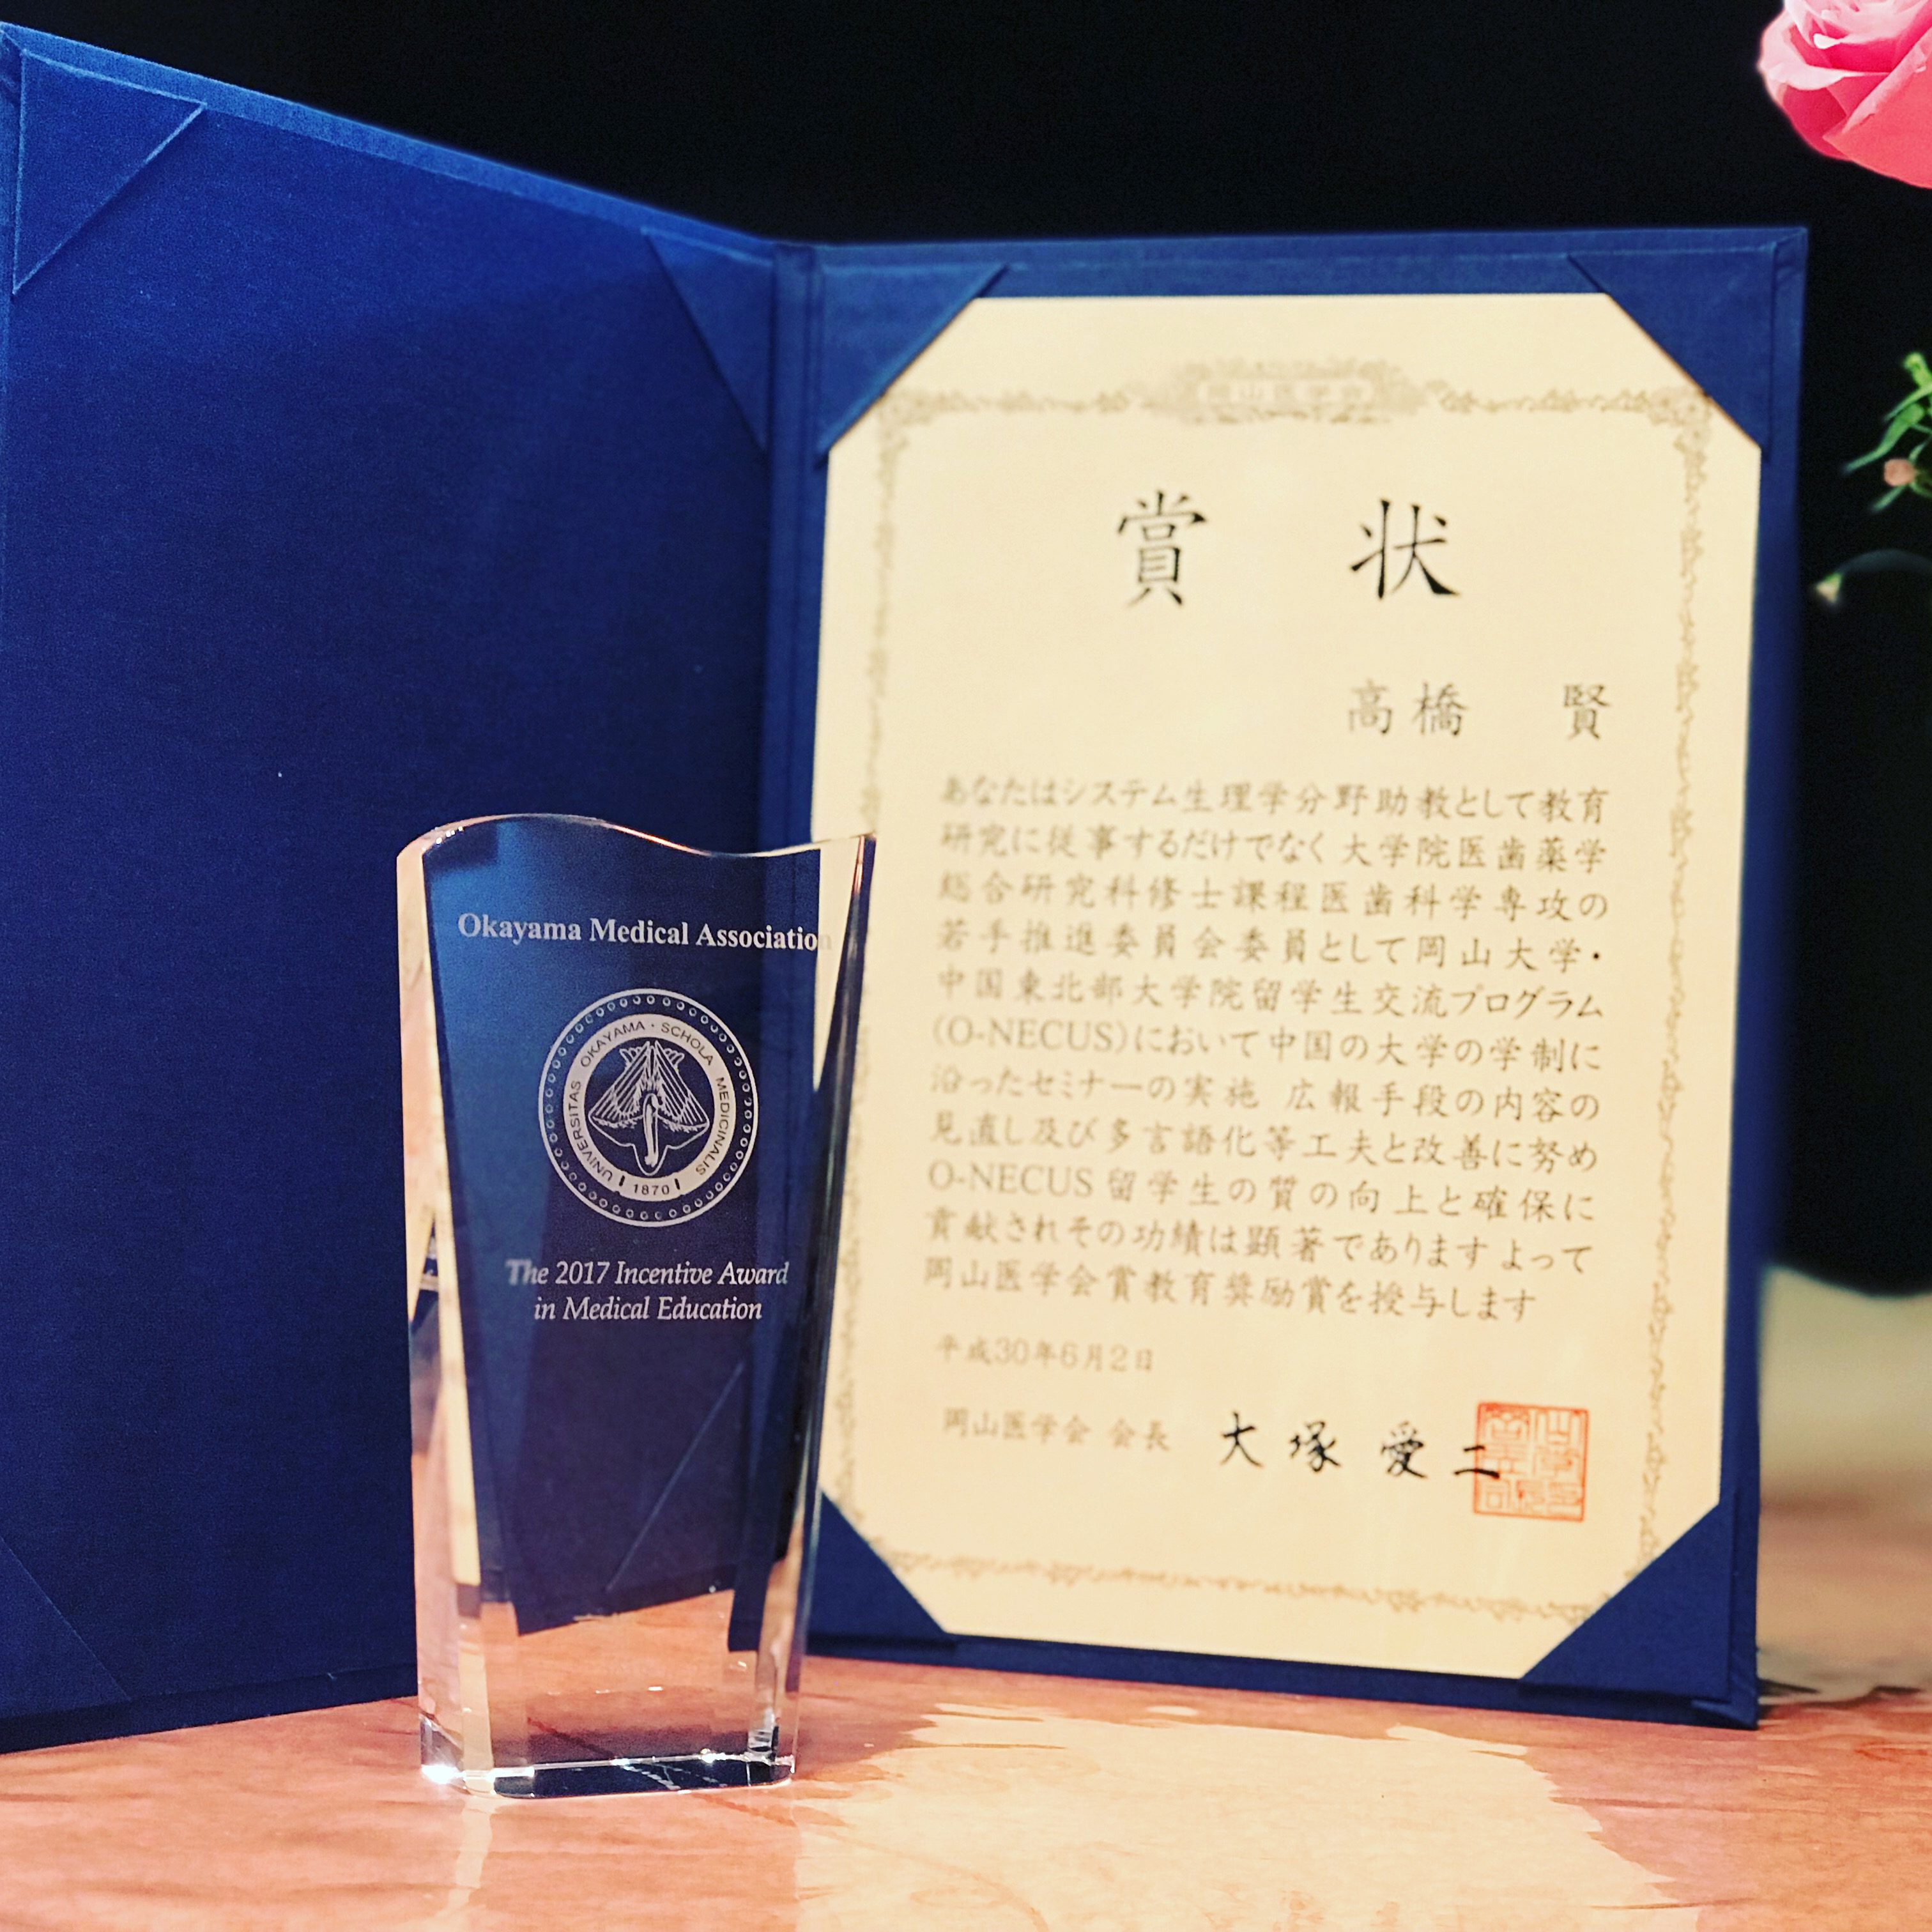 Award for Outstanding Contribution to Education, 岡山医学会 教育奨励賞